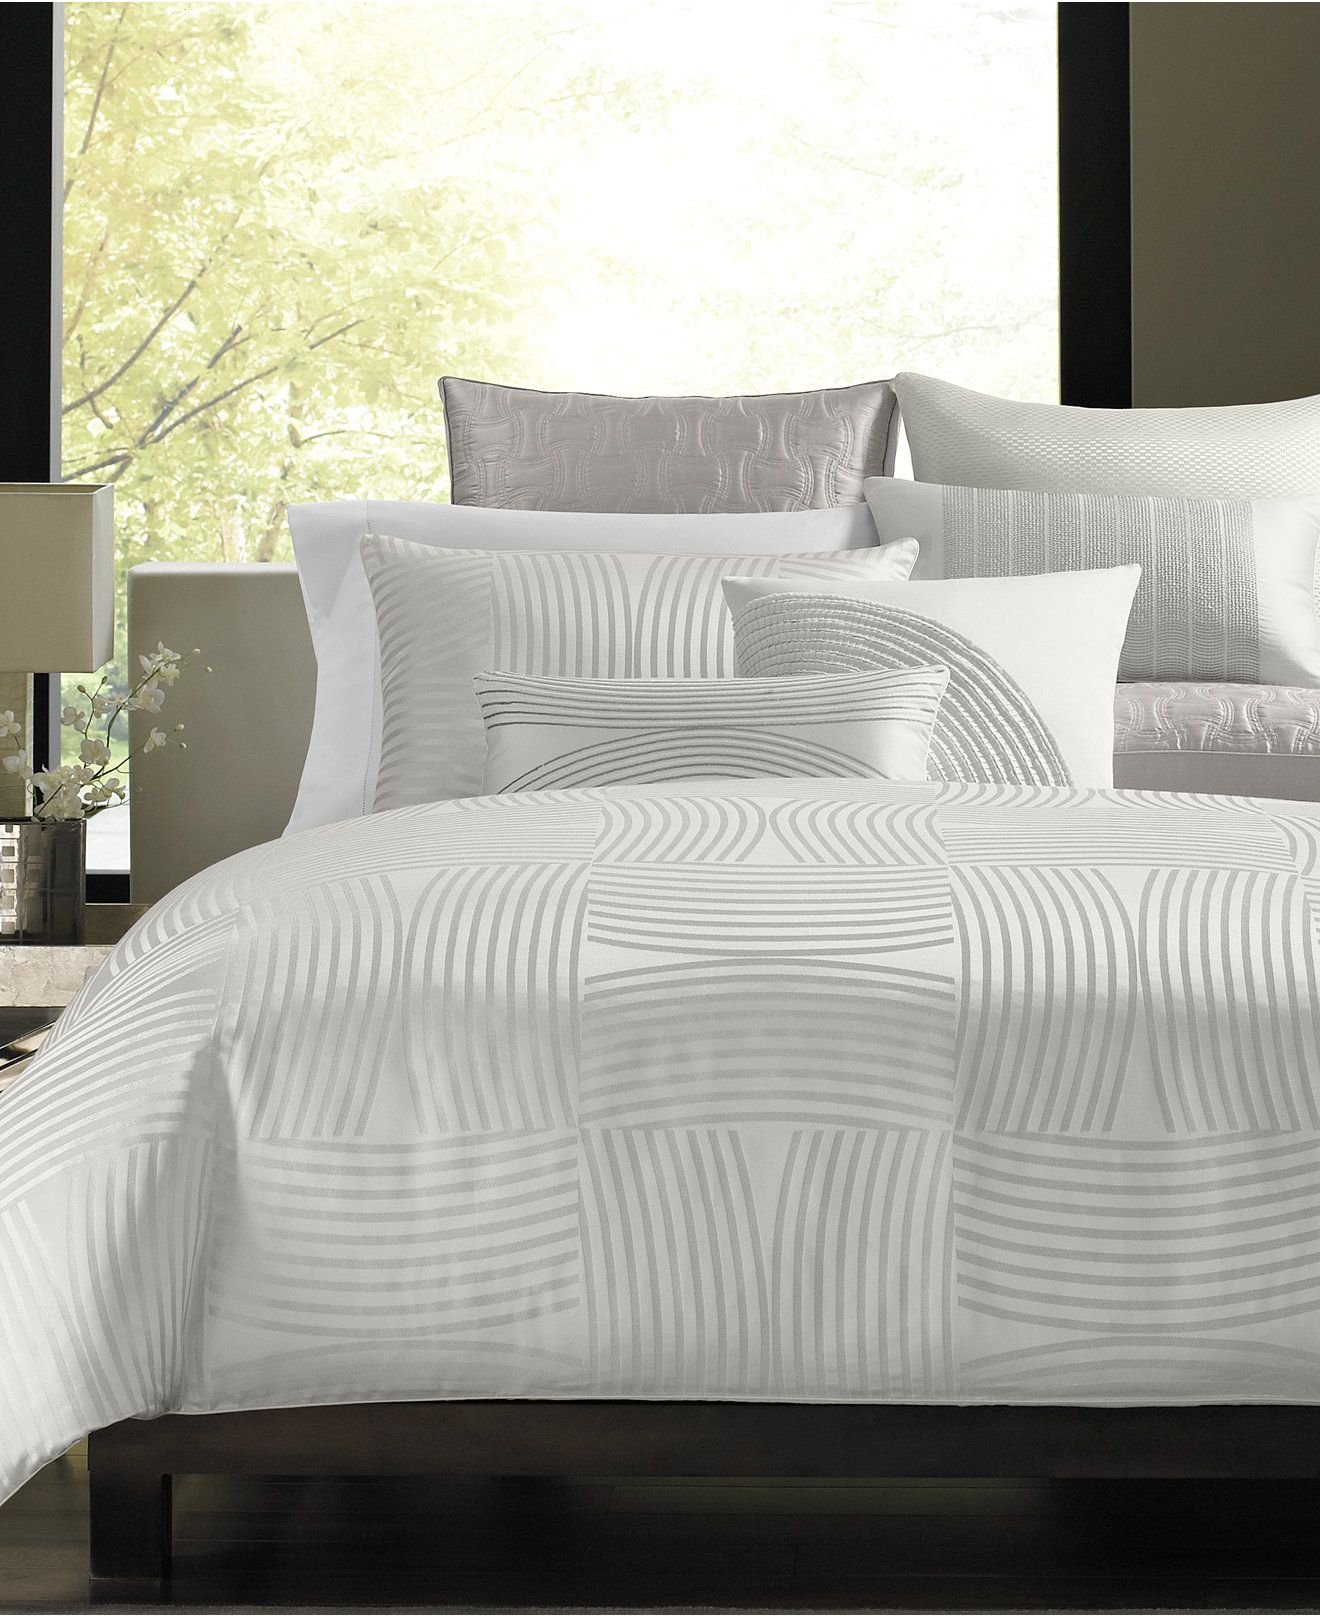 Hotel Collection Luminescent Bedding Collection  Bedding Collections  Bed